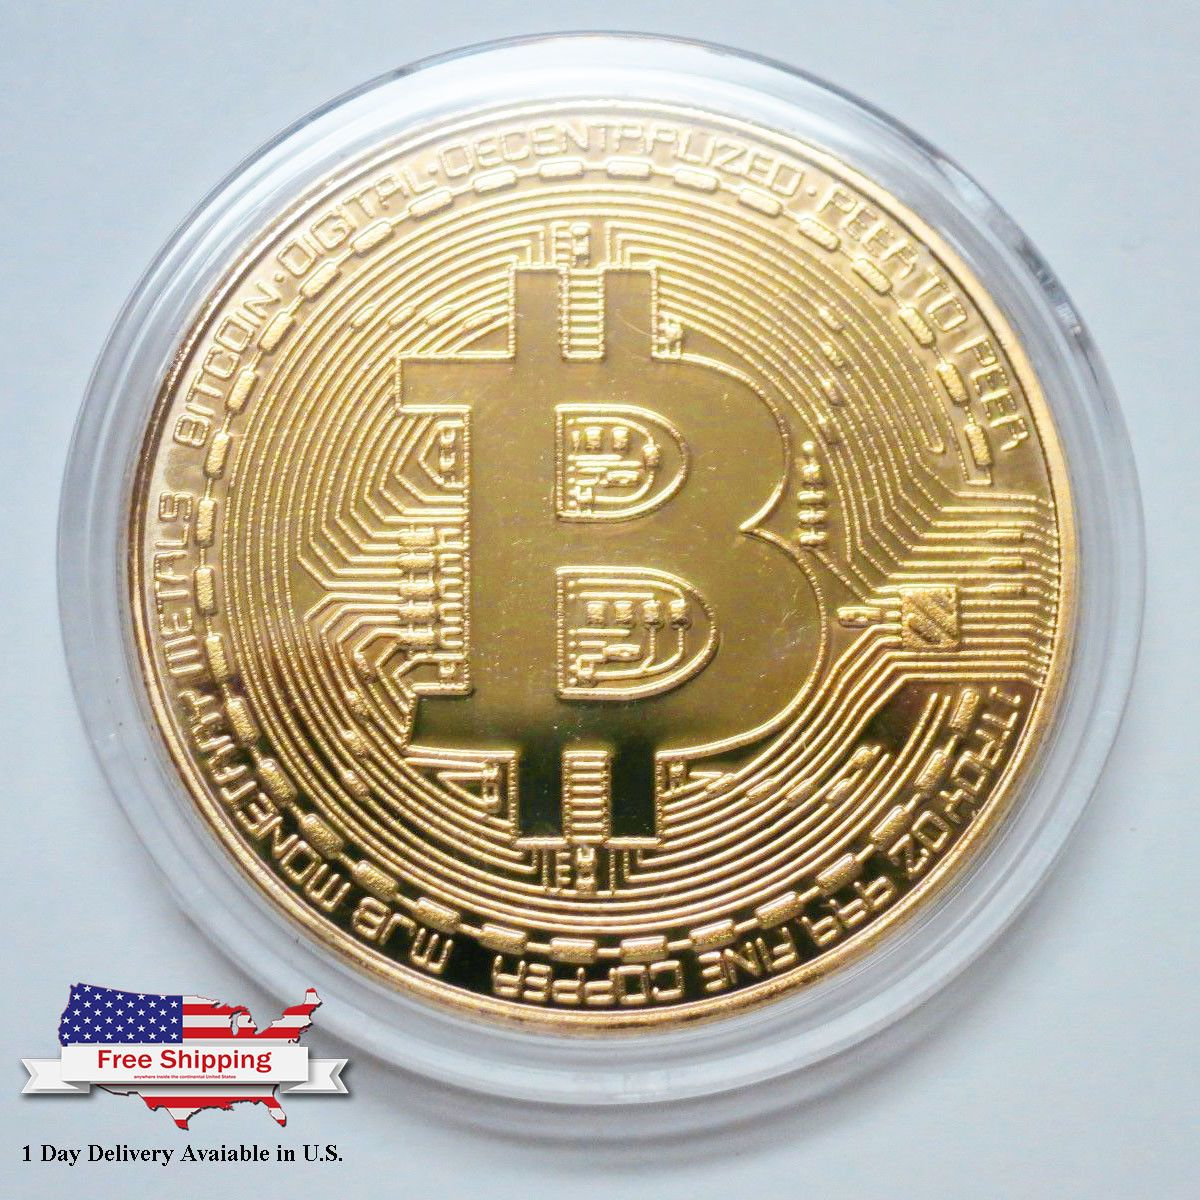 Gold Plated Physical Bitcoin in protective acrylic case Free SHIPPING BITCOIN!